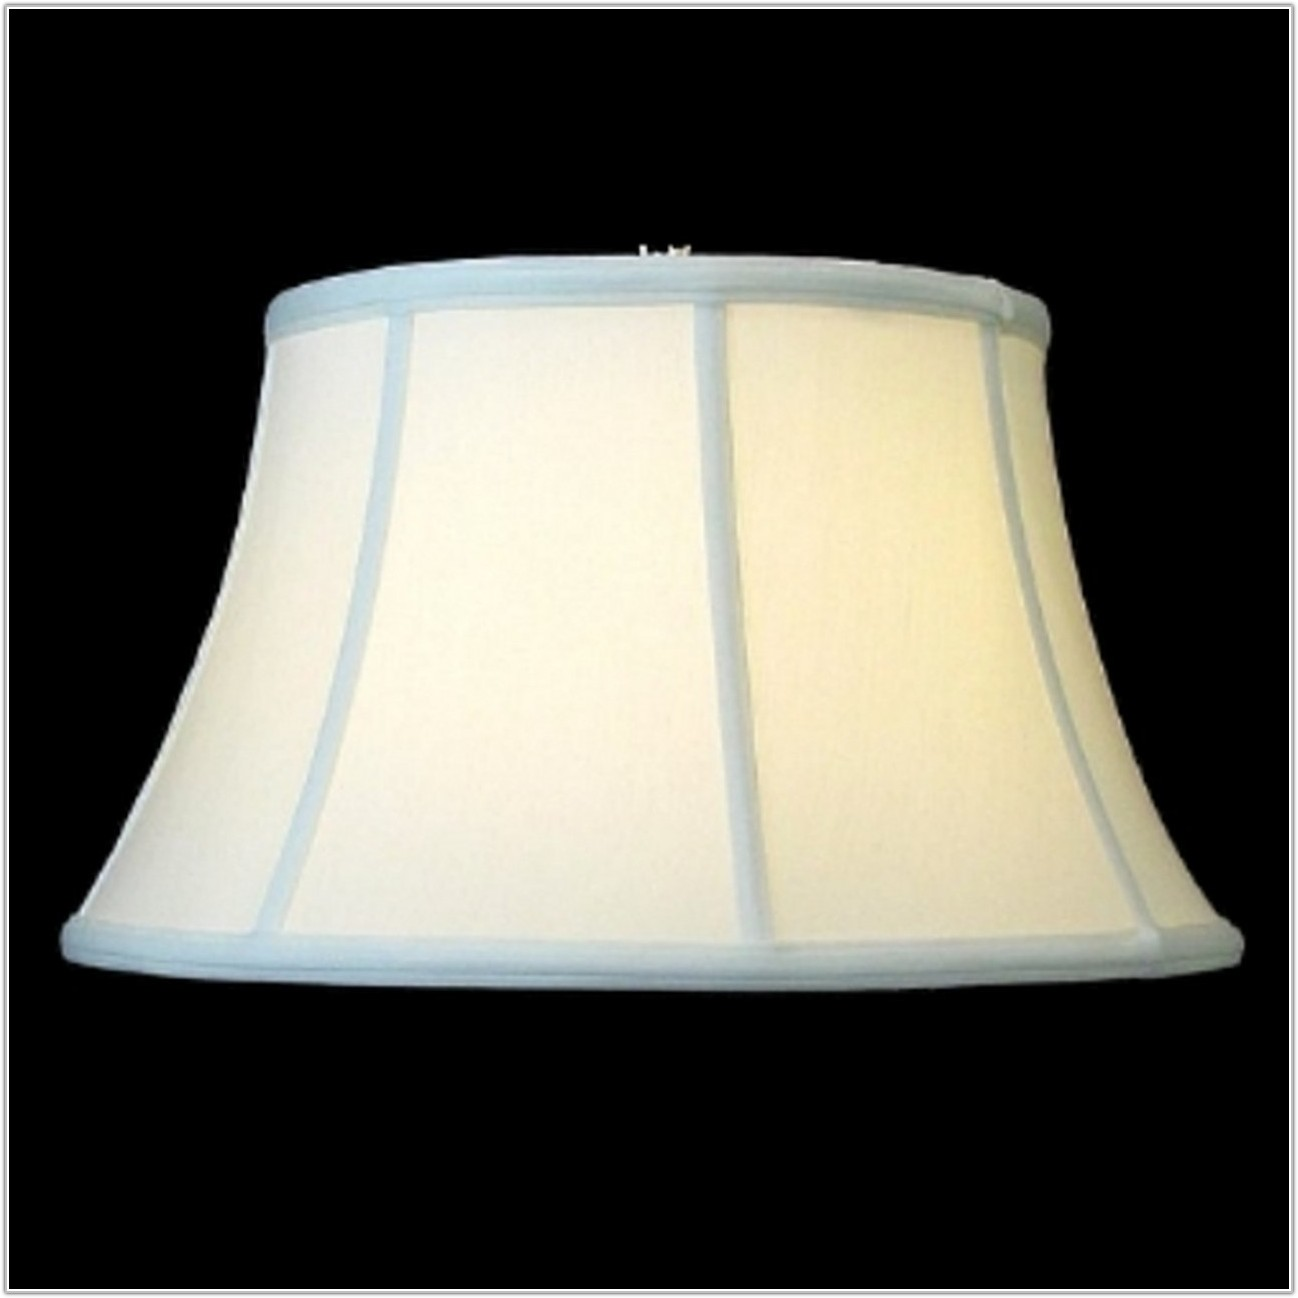 Swing Arm Lamp Shade Replacement